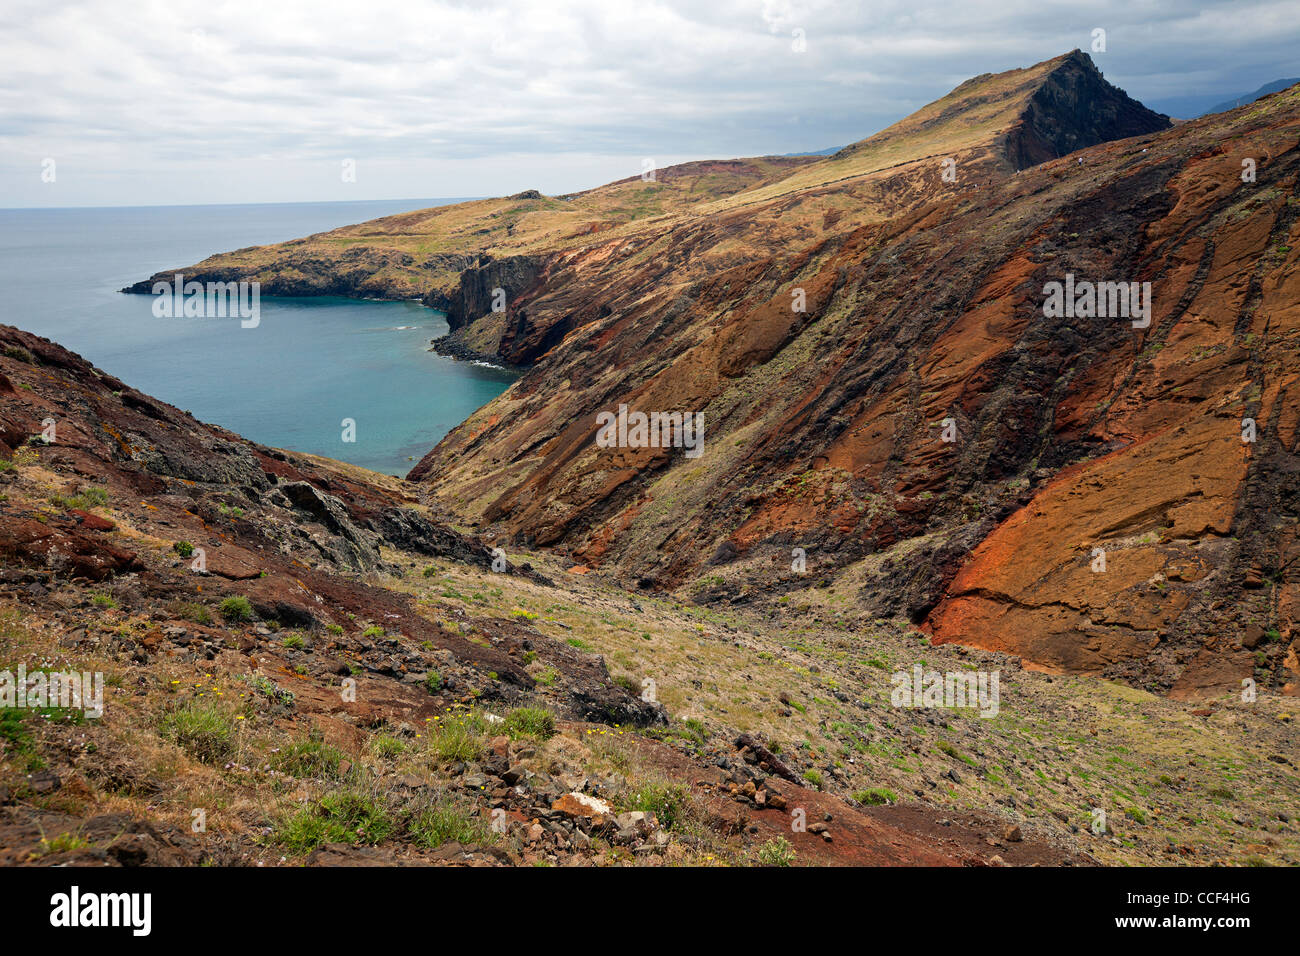 Madeira Island beaches and rocks - Stock Image